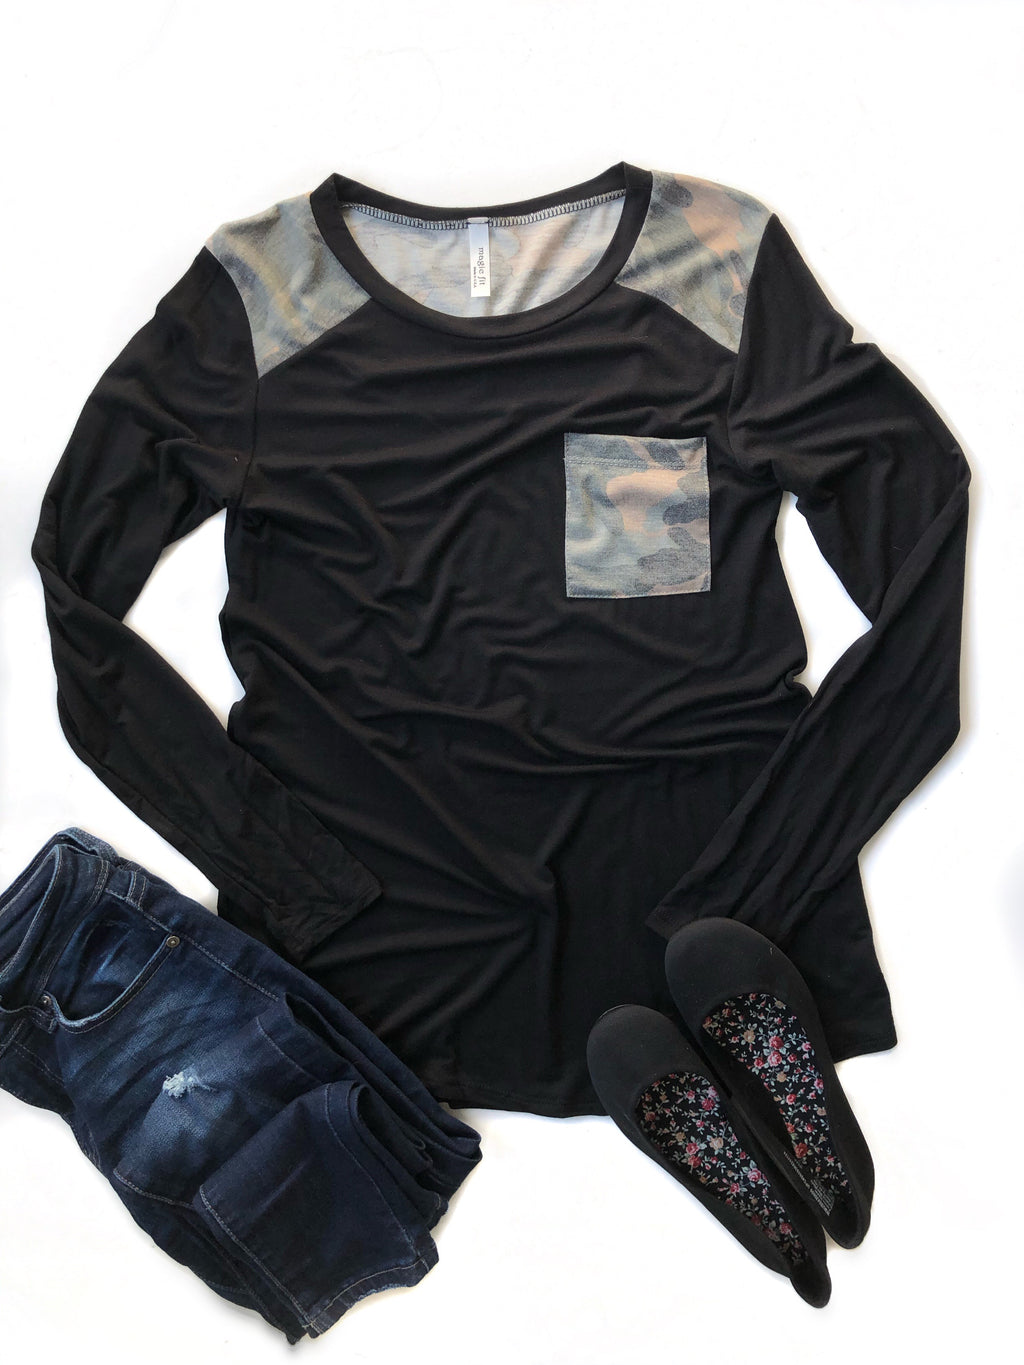 Simple Promises Long Sleeve Top with Camo Details in Black